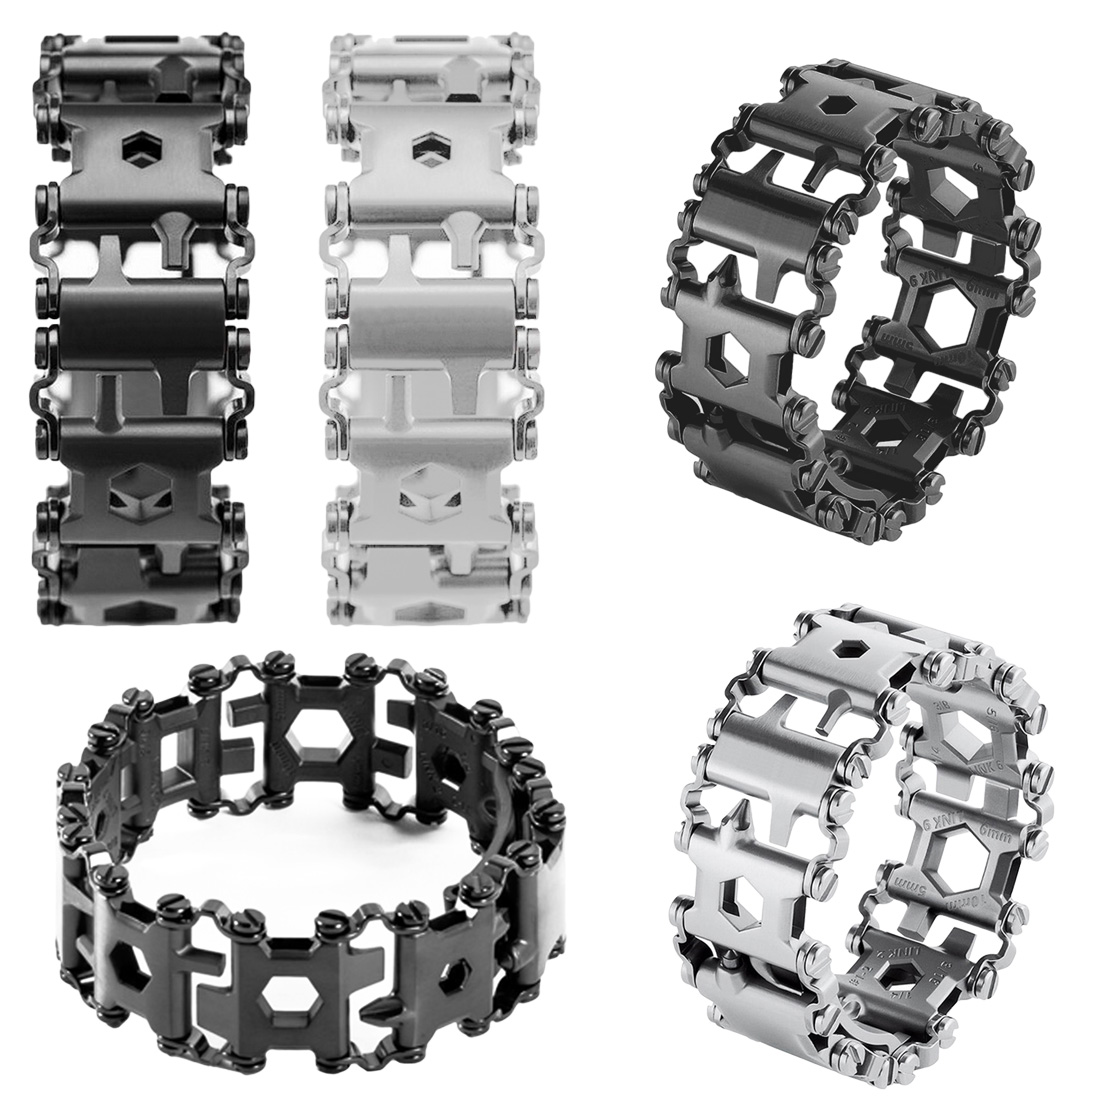 Hot <font><b>29</b></font> <font><b>In</b></font> <font><b>1</b></font> <font><b>Multi</b></font>-function Wearable Tread <font><b>Bracelet</b></font> Strap <font><b>Multi</b></font>-function Screwdriver Outdoor Emergency Kit <font><b>Multi</b></font> <font><b>Tool</b></font> image